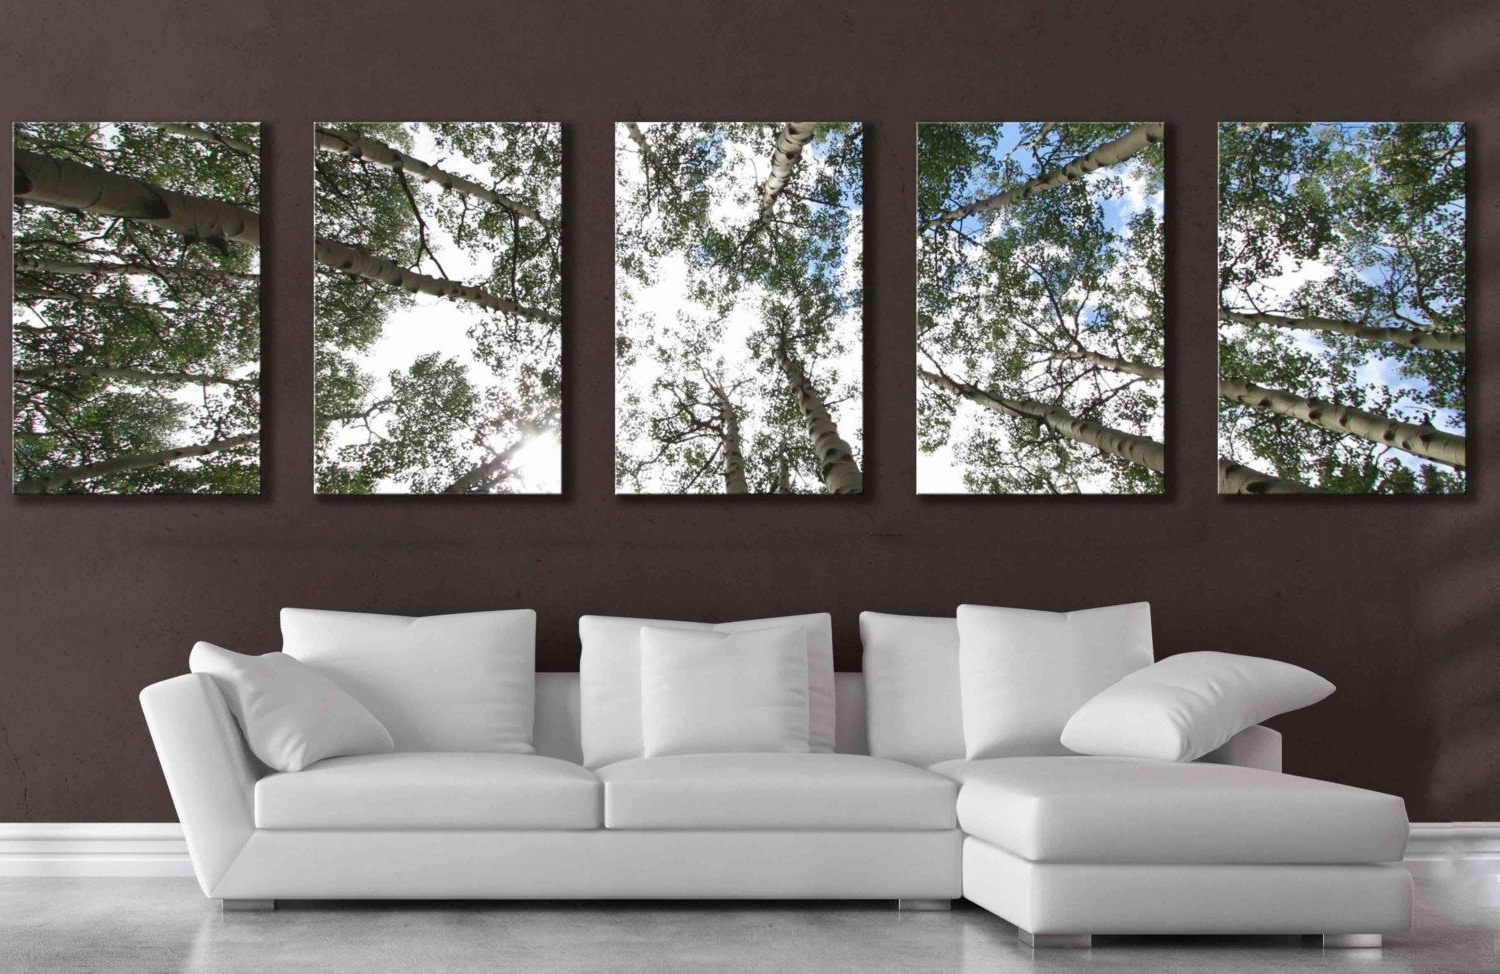 Popular Panel Wall Art With Regard To Large 5 Panel Wall Art Aspen Tree Canvas Decor Five Multipiece (View 8 of 15)